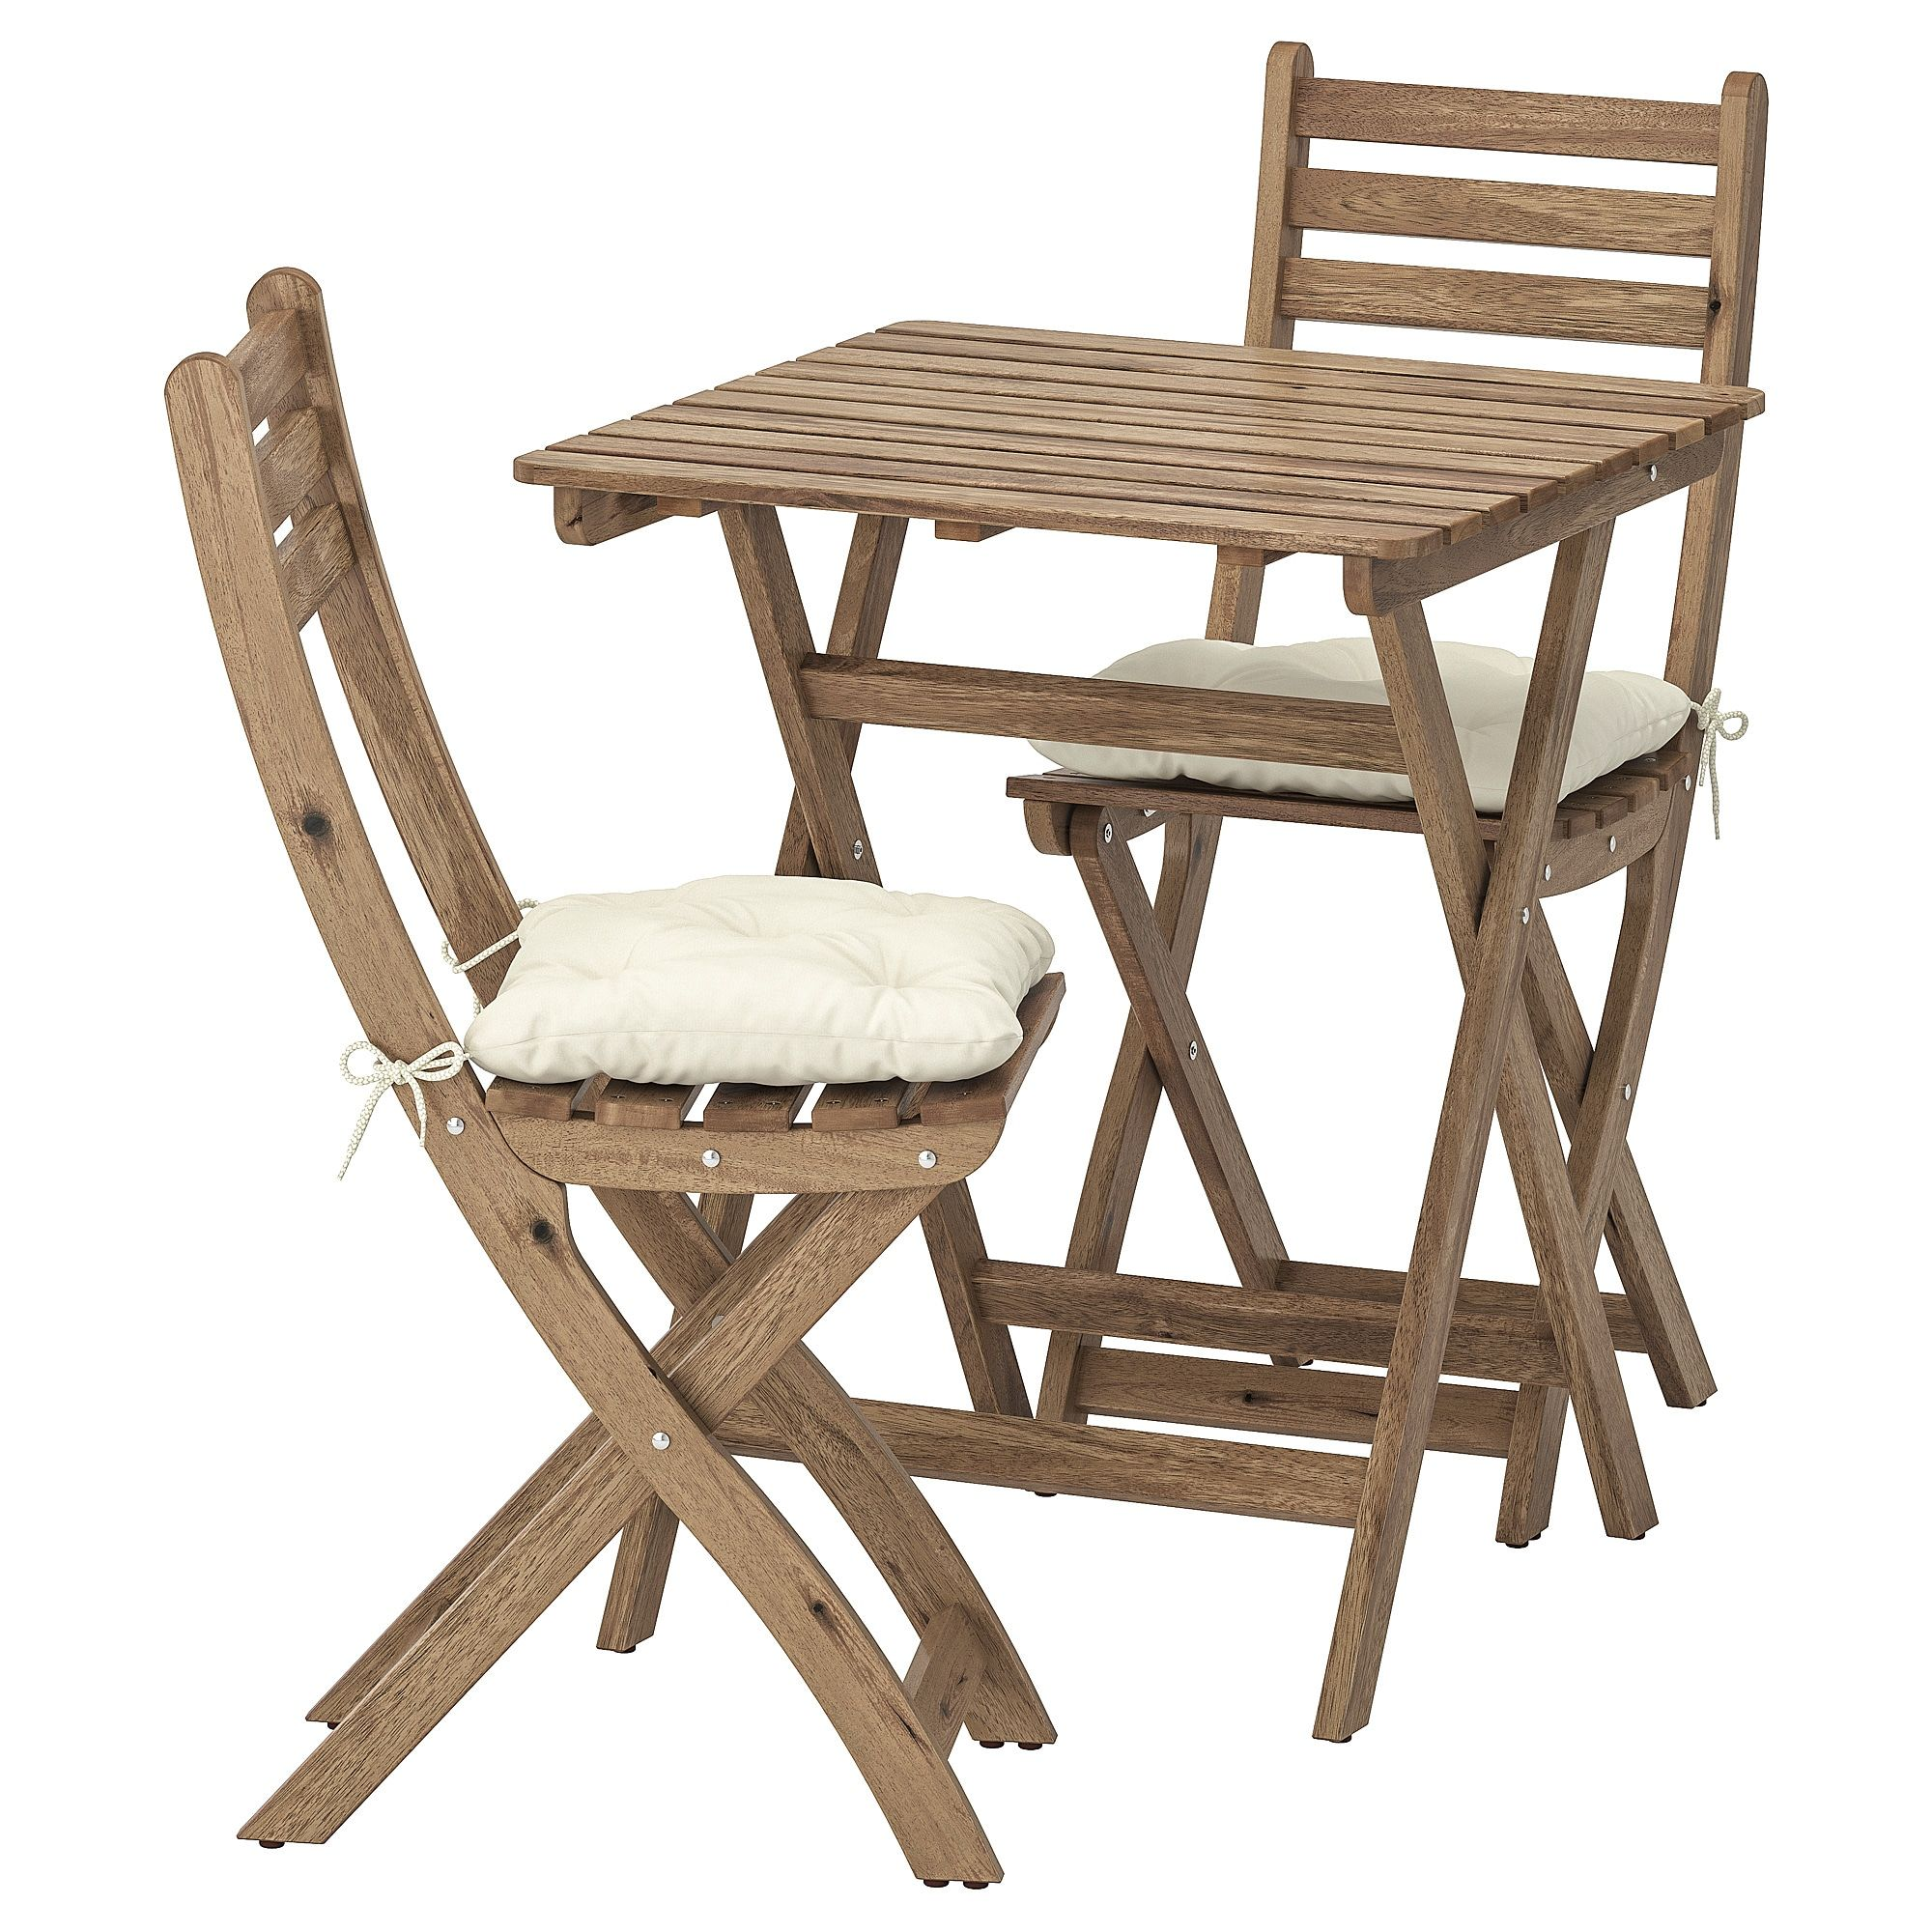 Askholmen Table 2 Chairs Outdoor Gray Brown Stained Kuddarna Beige Ikea In 2020 Outdoor Dining Furniture Outdoor Folding Chairs Ikea